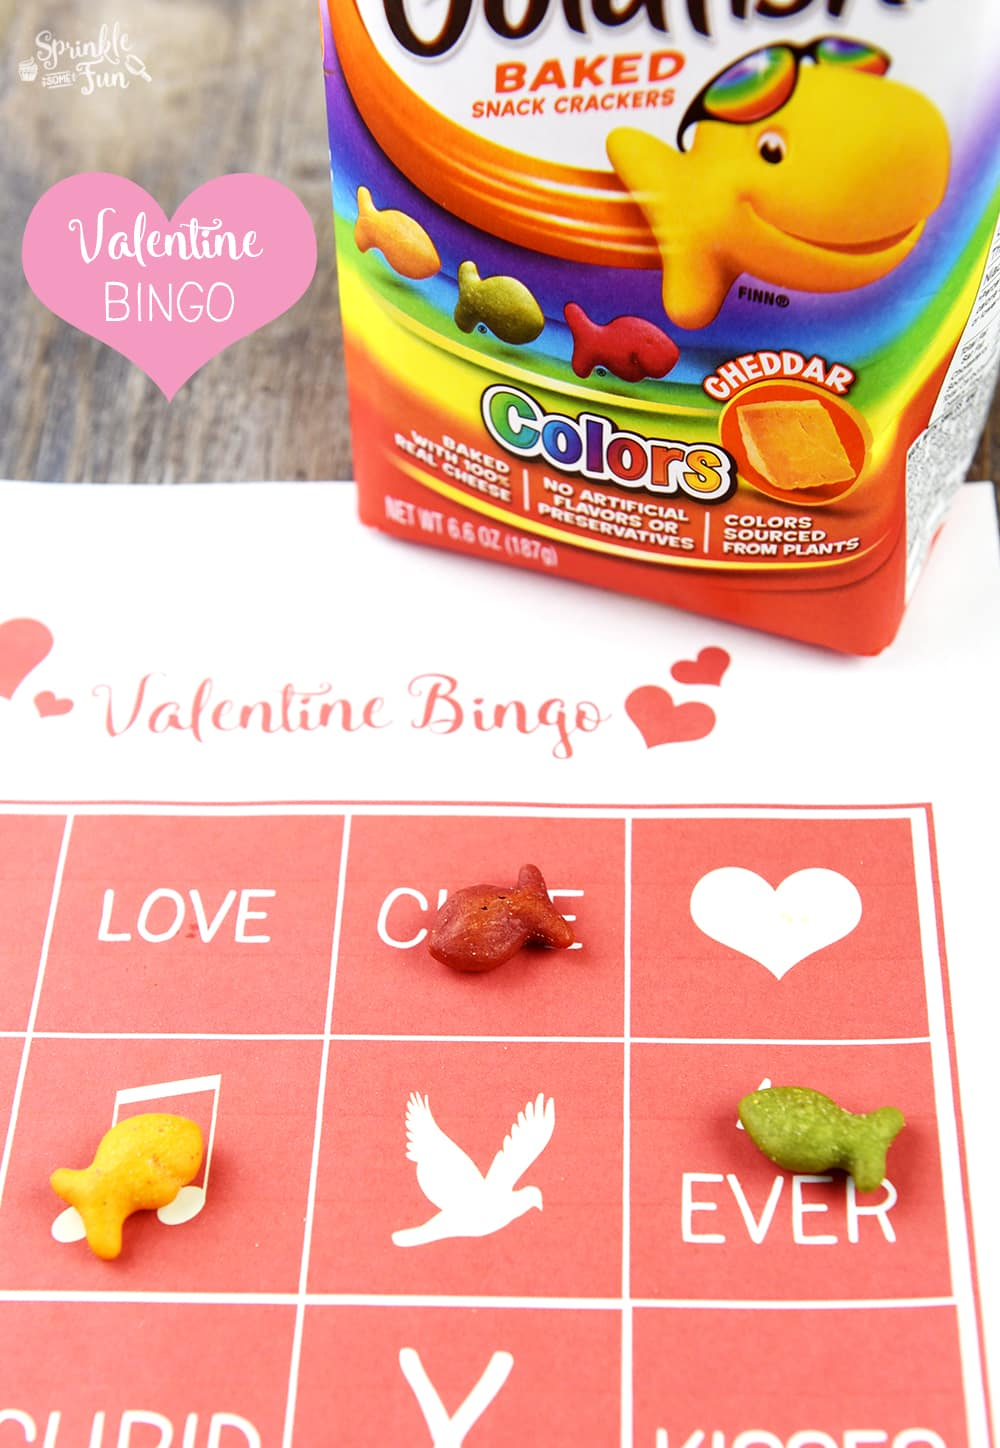 photograph about Free Printable Valentine Games for Adults named 4 Enjoyable Valentine Video games Printables ⋆ Sprinkle Some Enjoyable